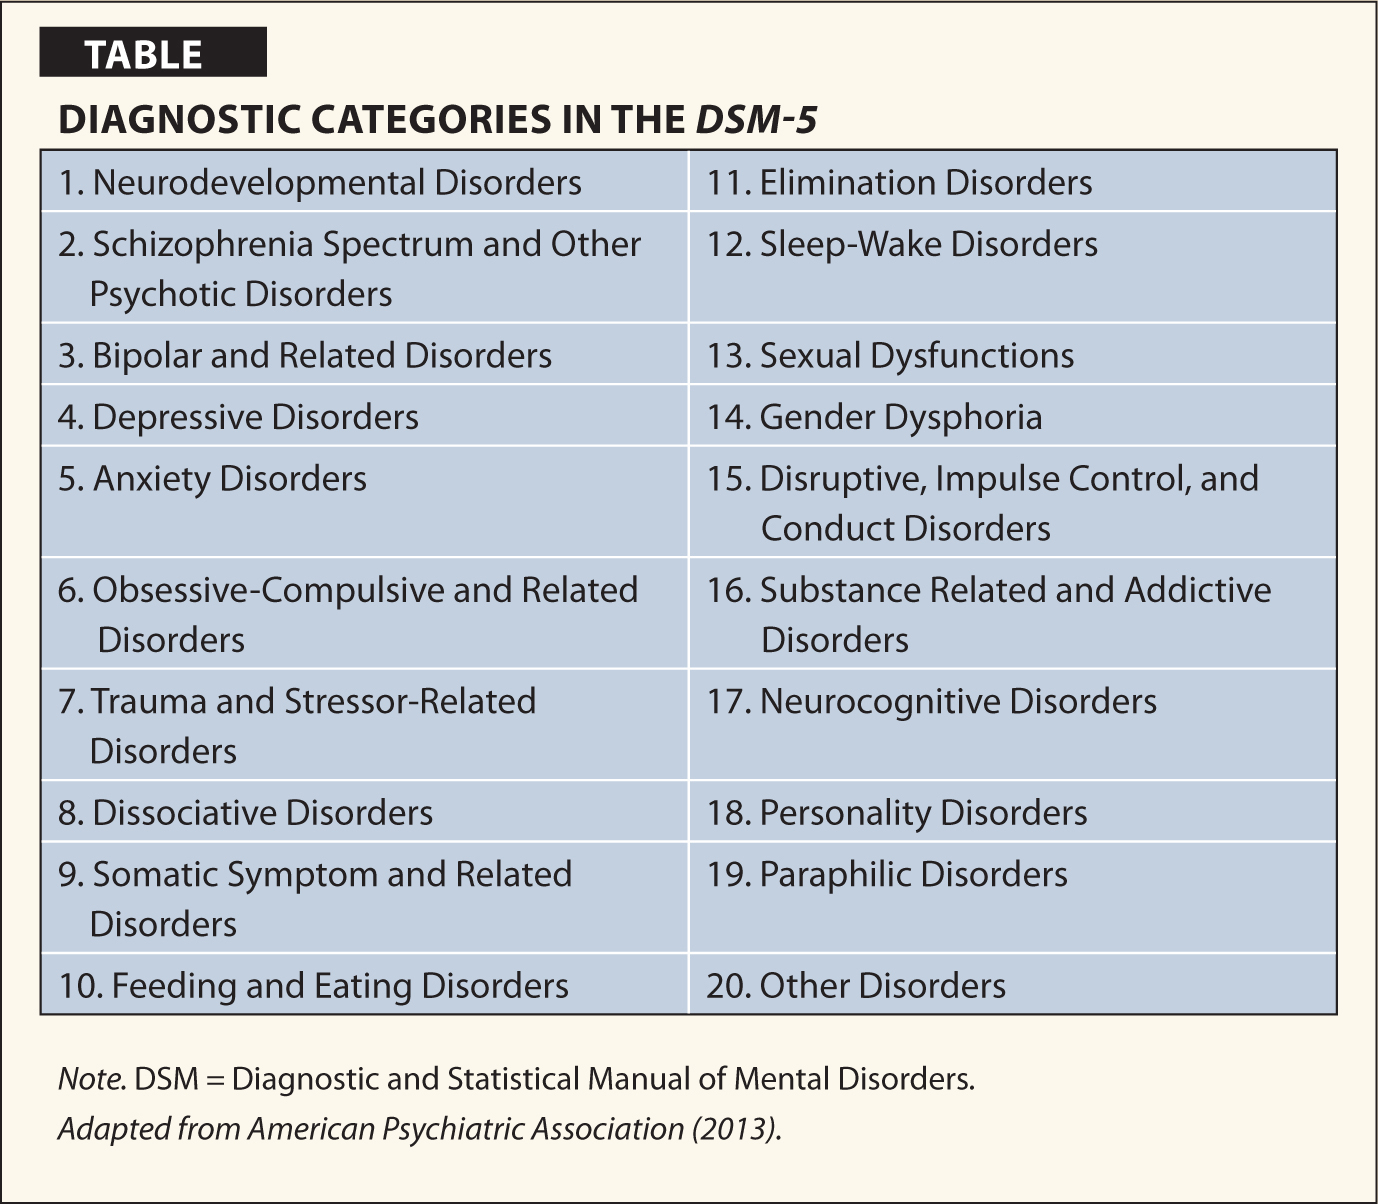 an overview of paranoid schizophrenia the prevalence of the mental illness diagnostic criteria and i Paranoid schizophrenia was considered a type of  to help standardize diagnoses of different types of mental illness  diagnostic criteria.